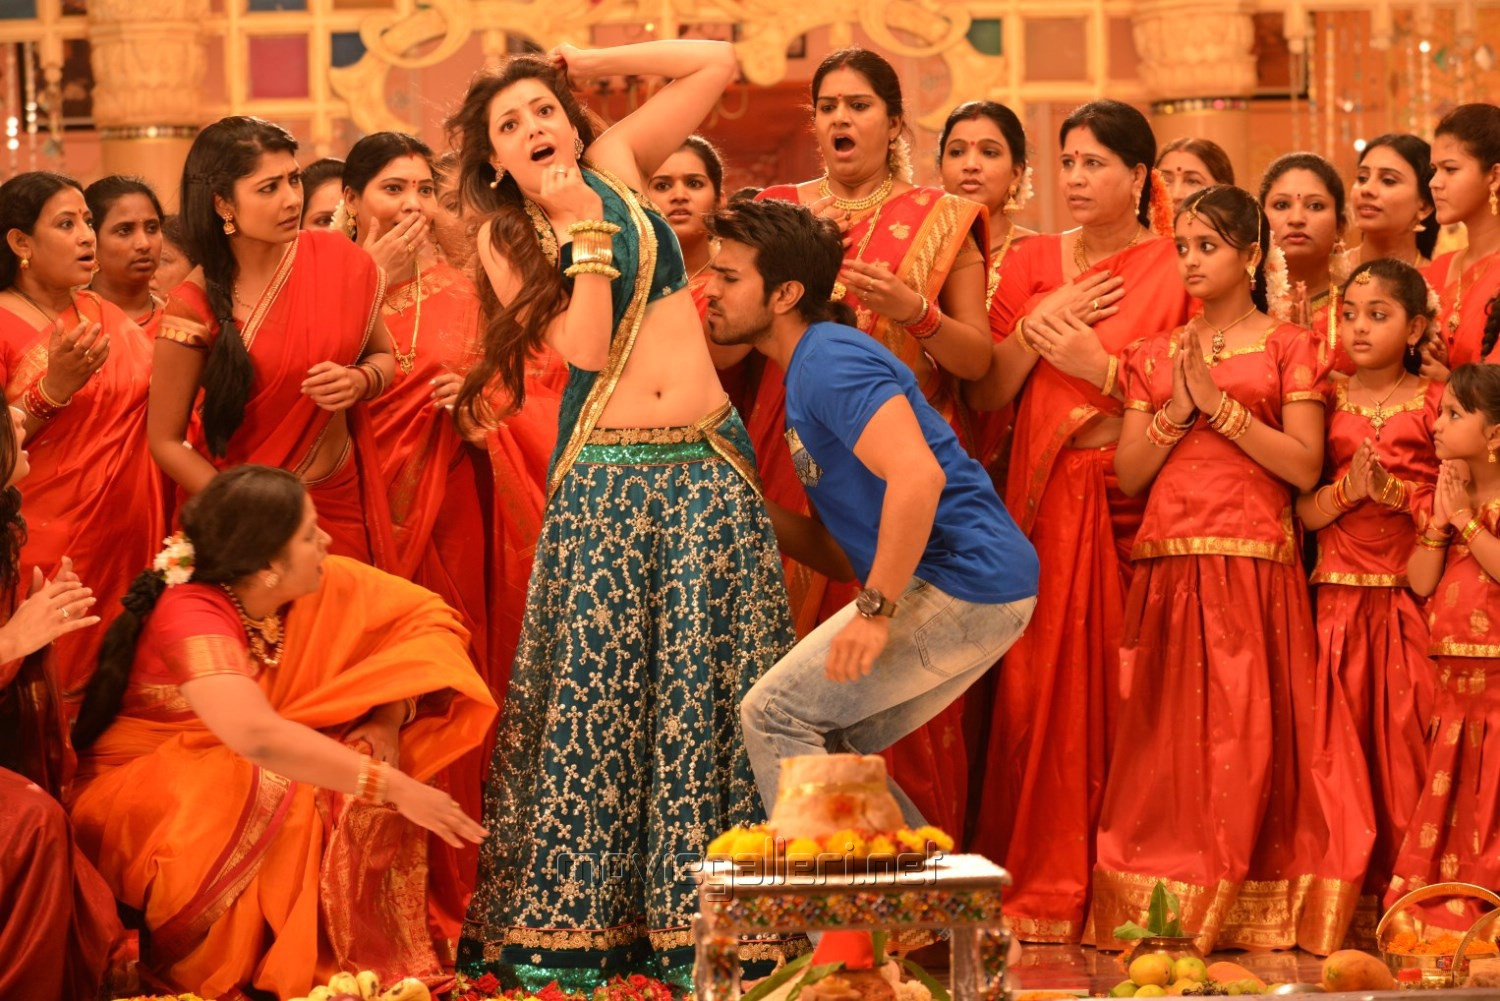 Whoa... What Ram Charan did was not for